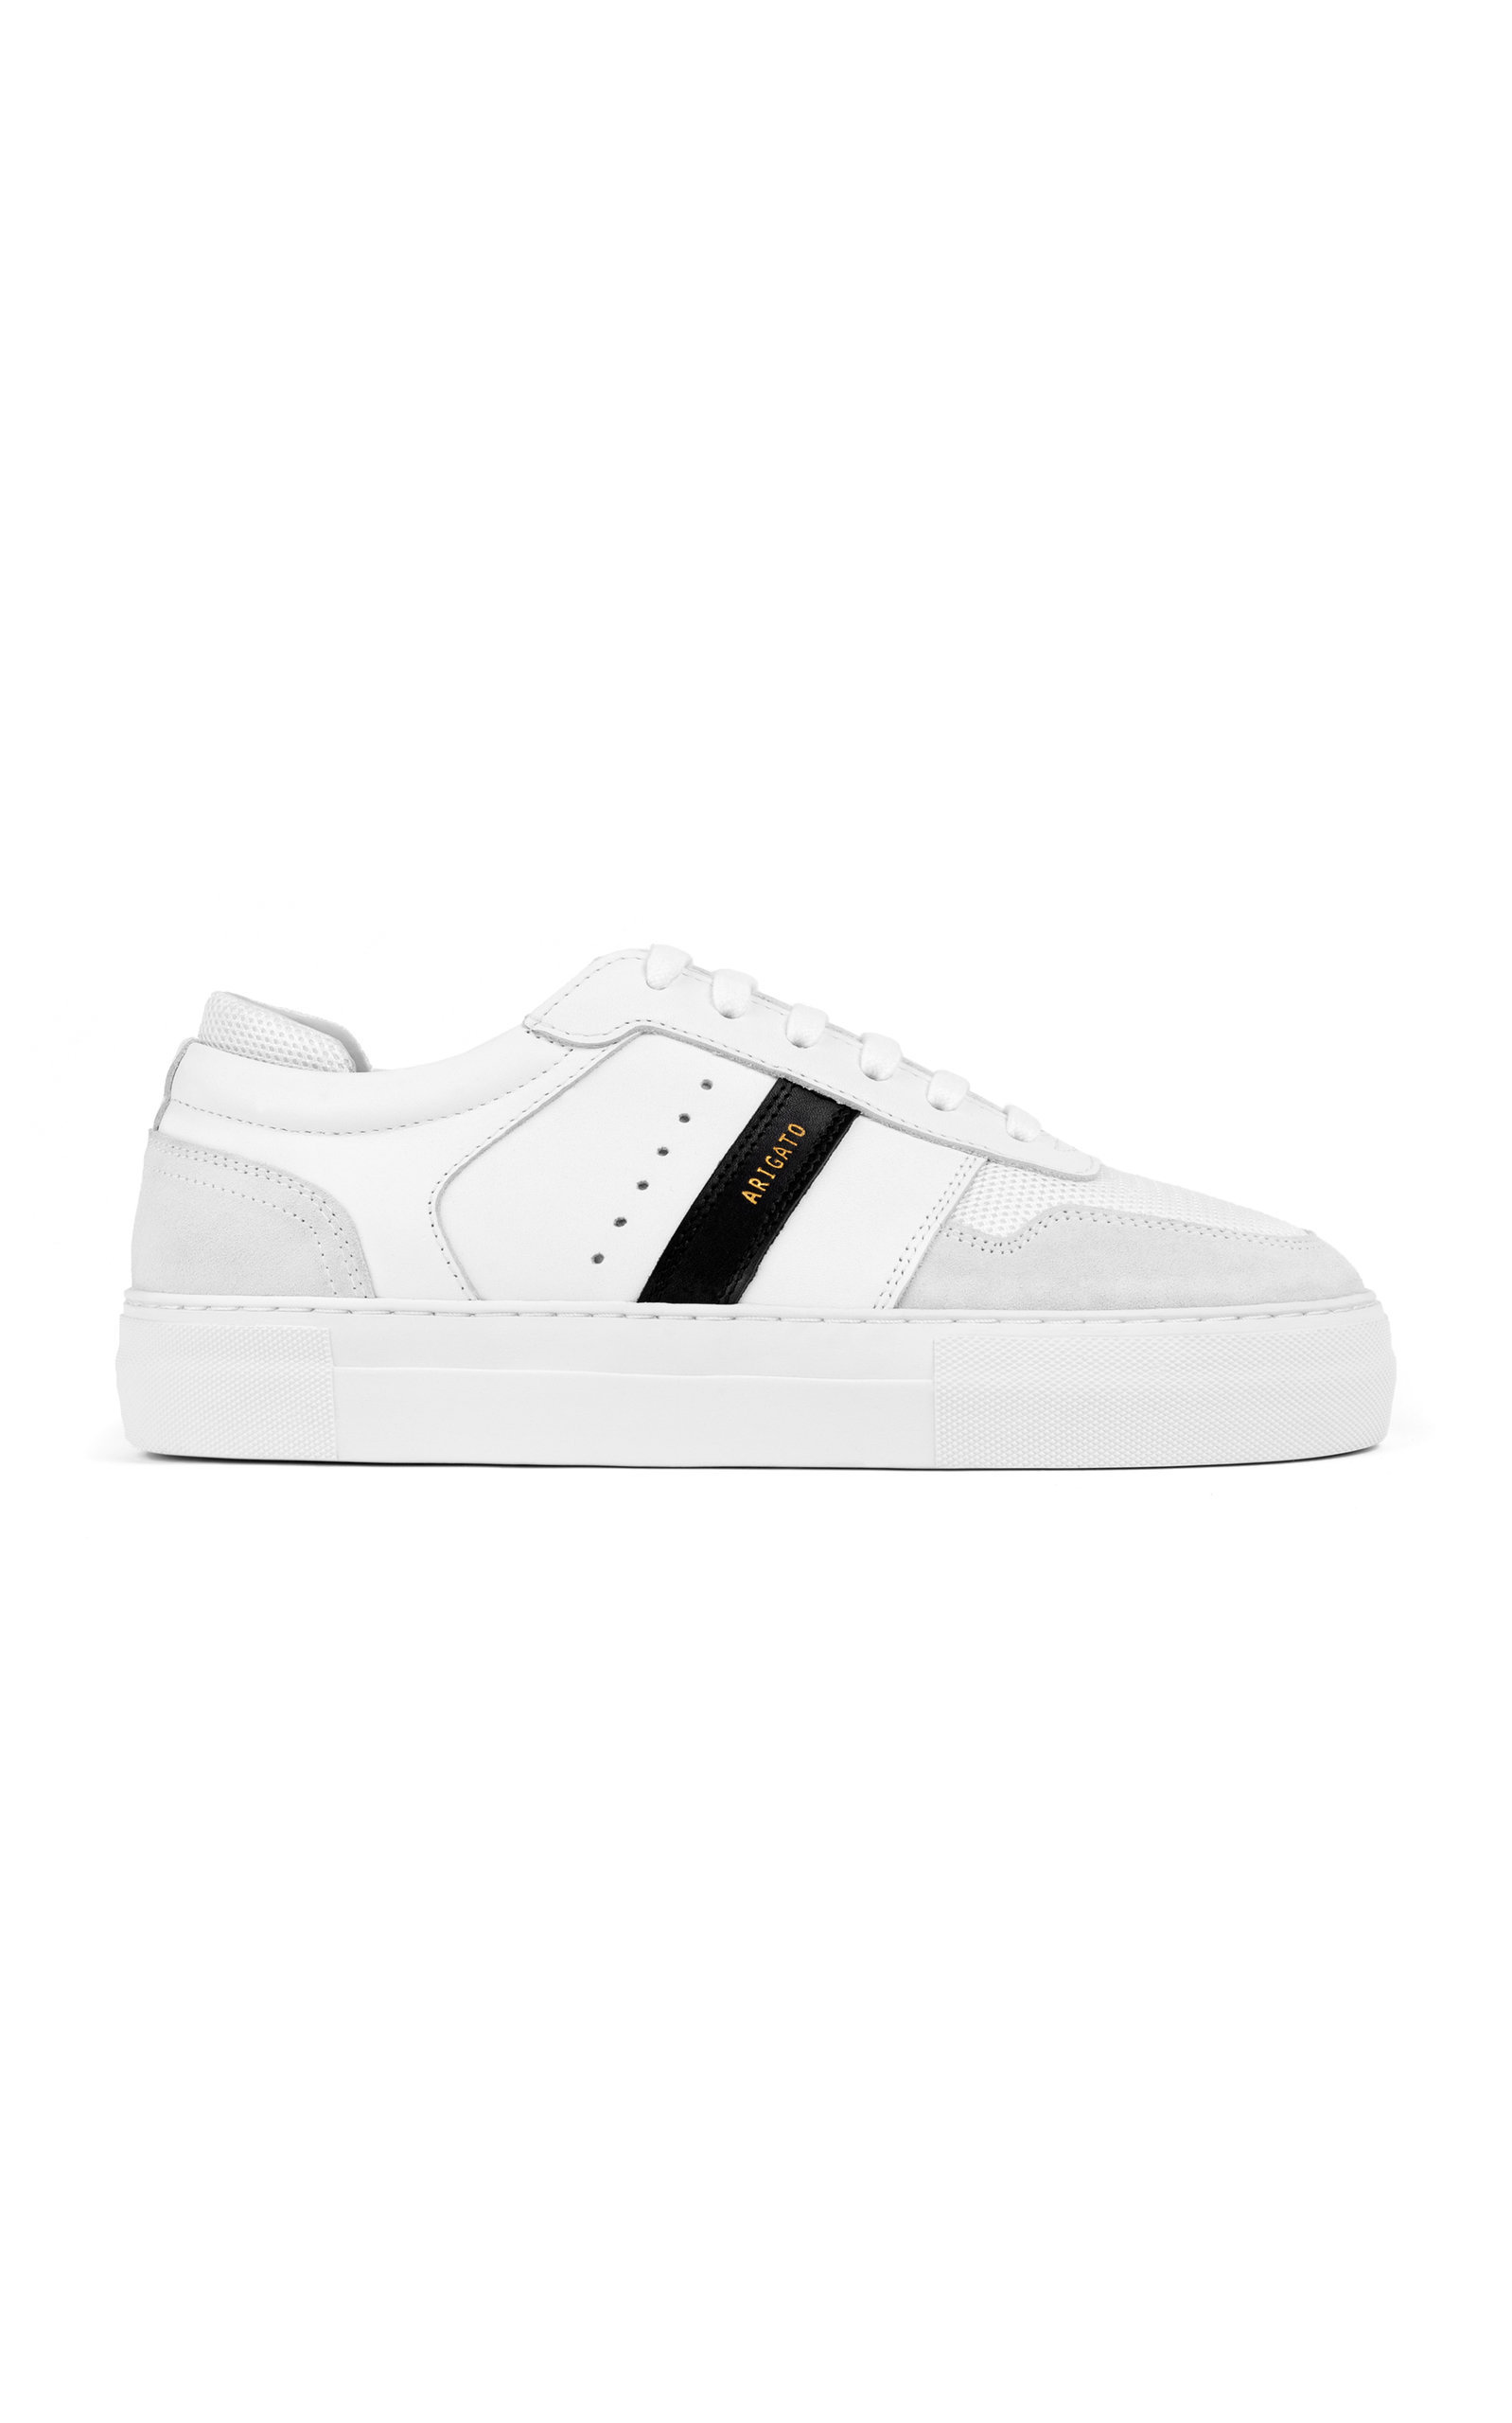 340242b9b66 Axel Arigato Leather Platform Sneakers In White